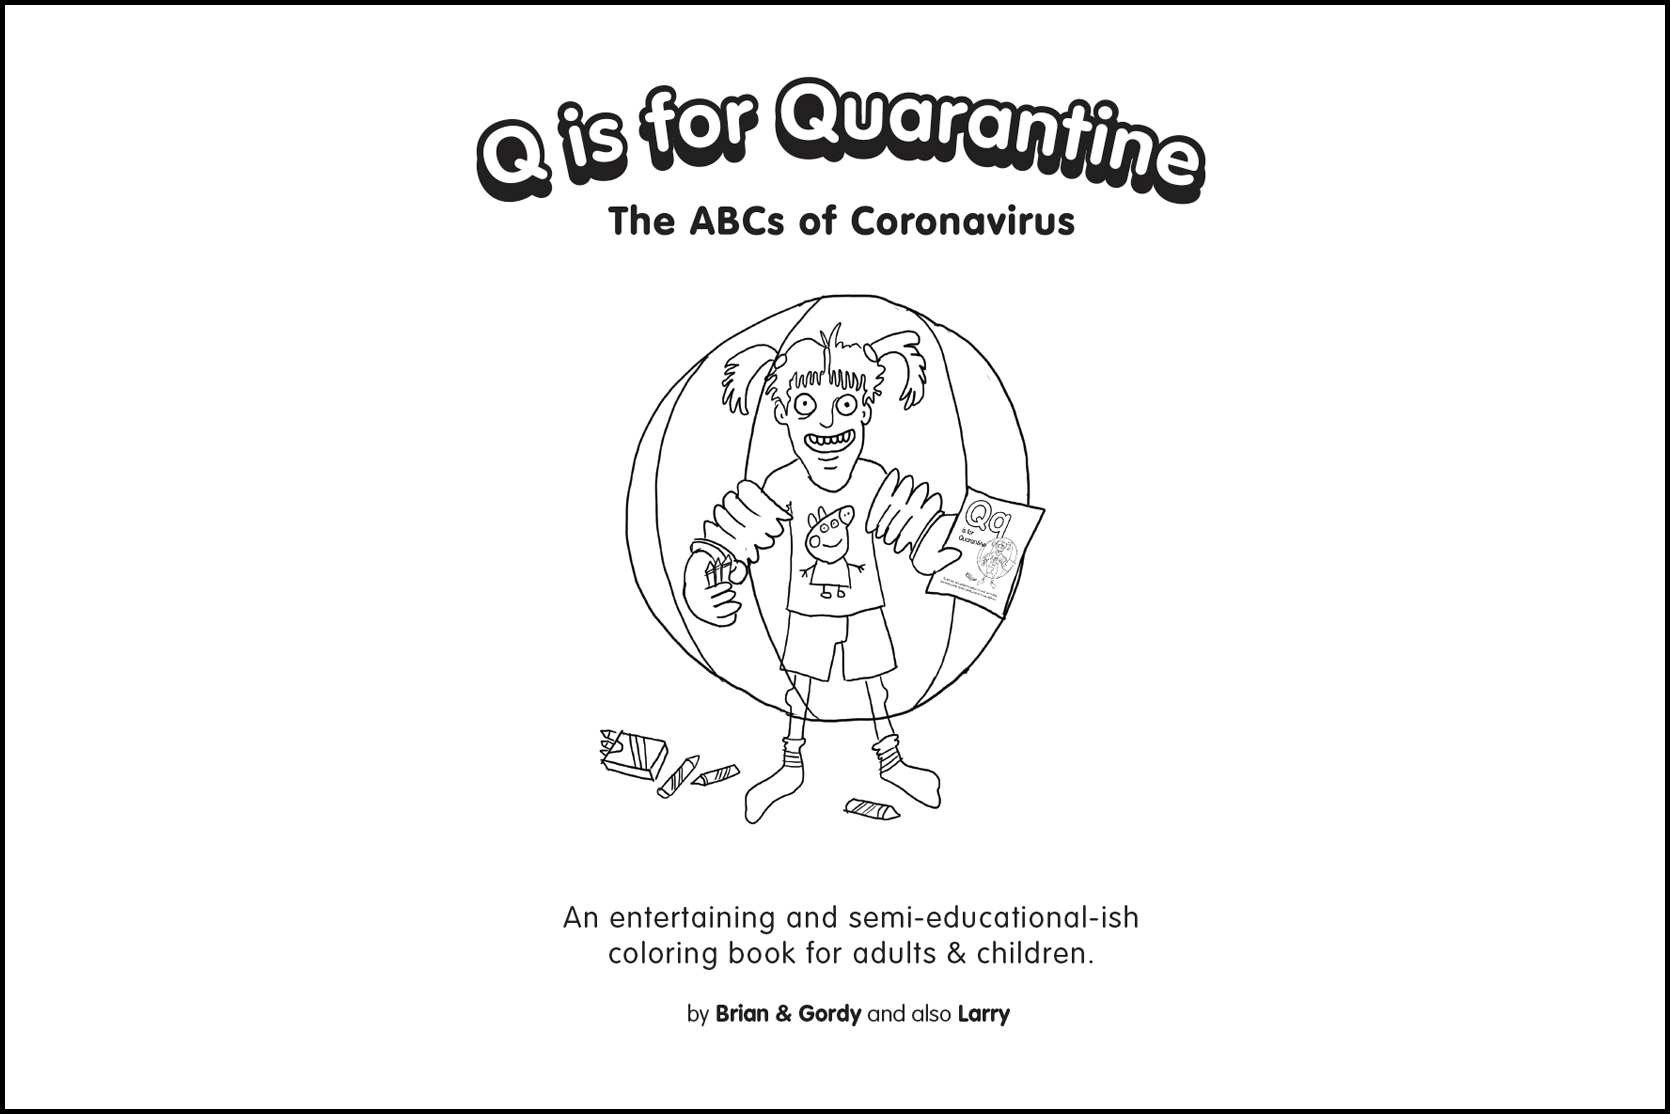 Brian Siedband and Gordy Sang: Q is For Quarantine